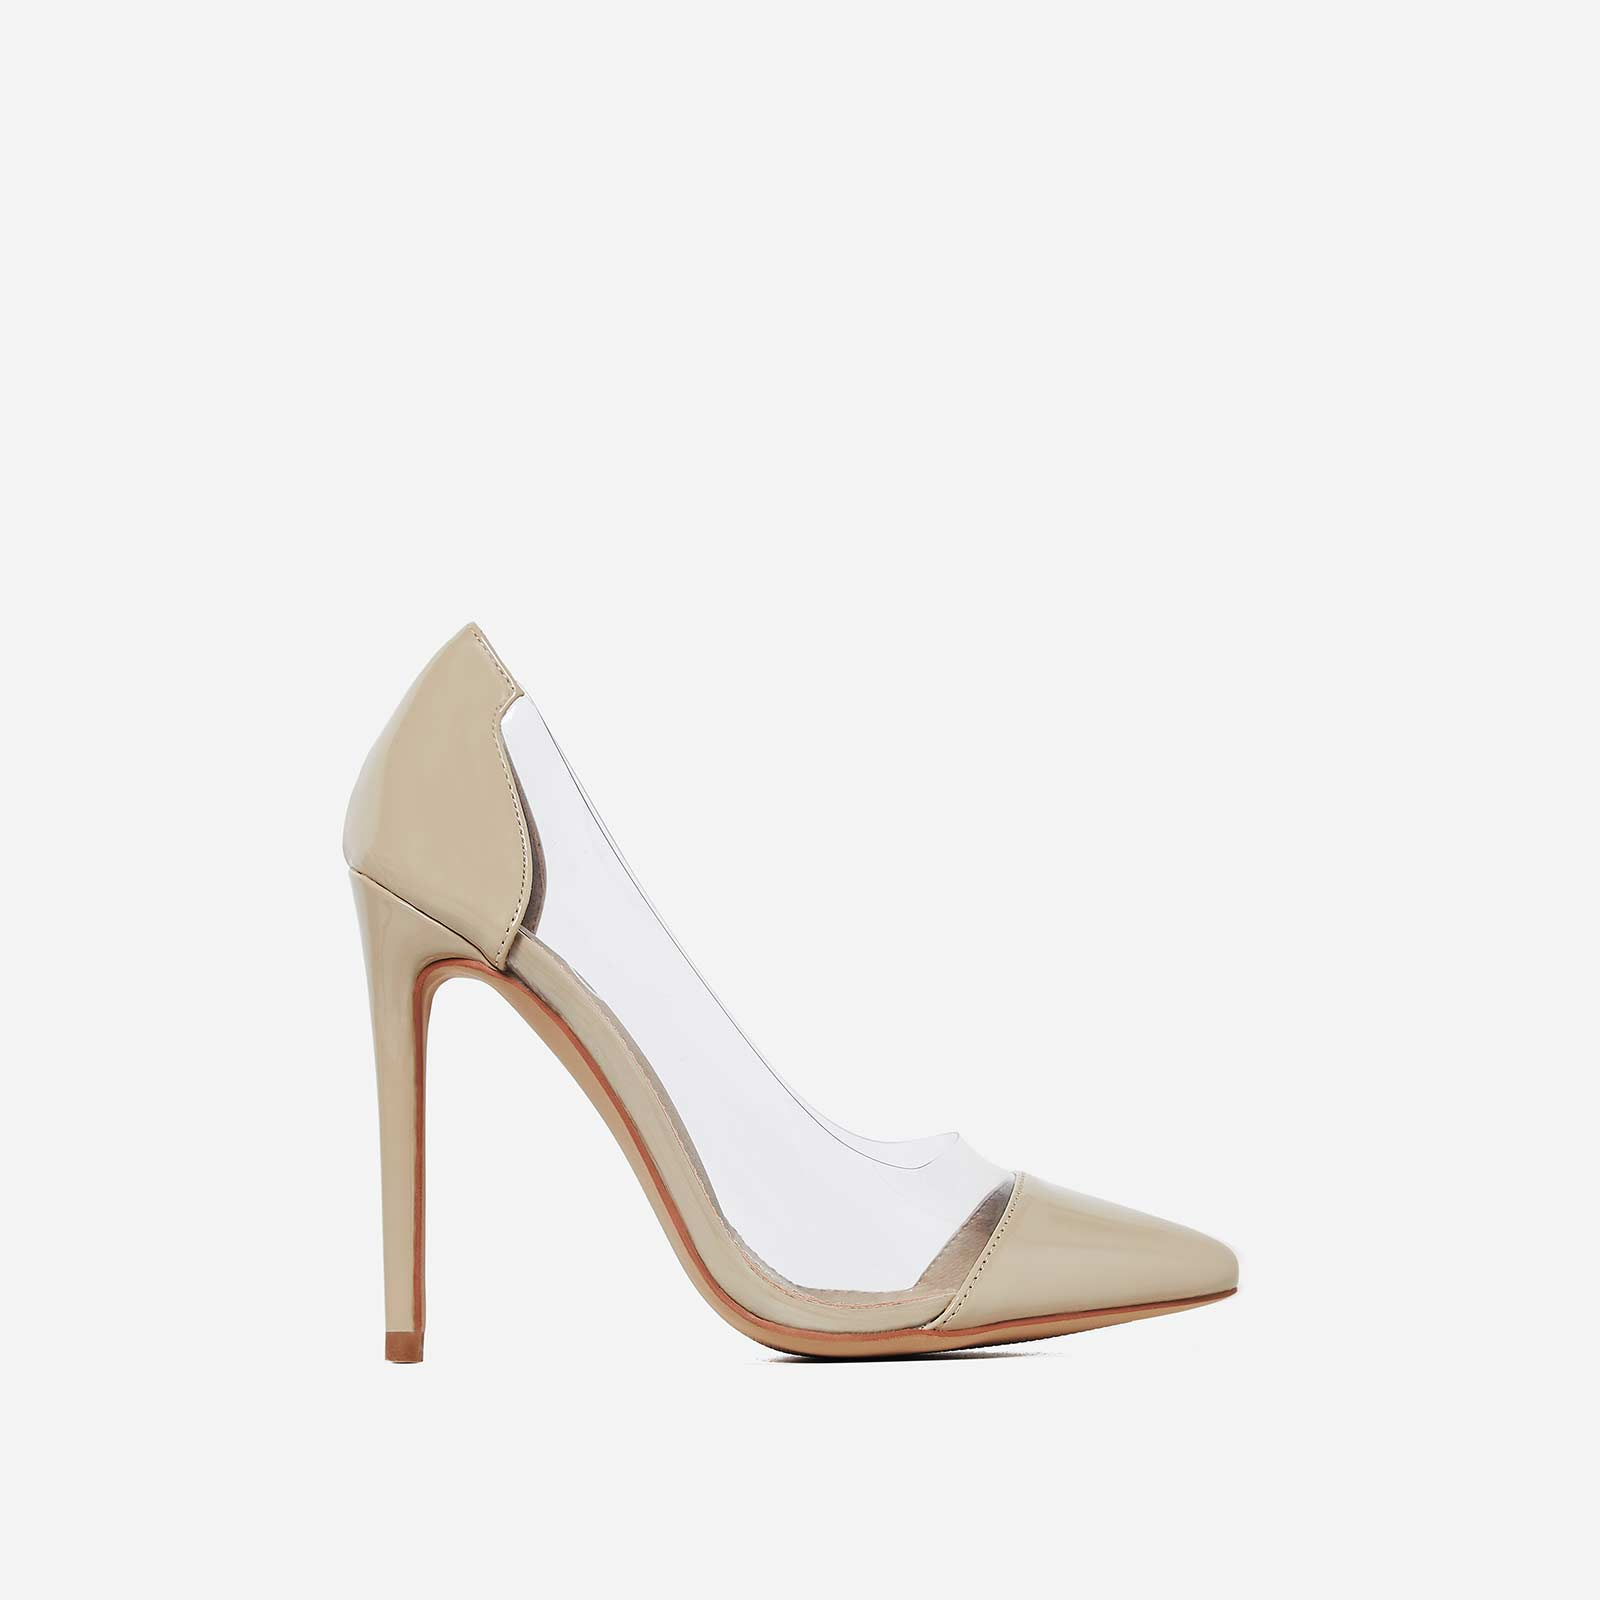 Cici Perspex Court Heel In Nude Patent